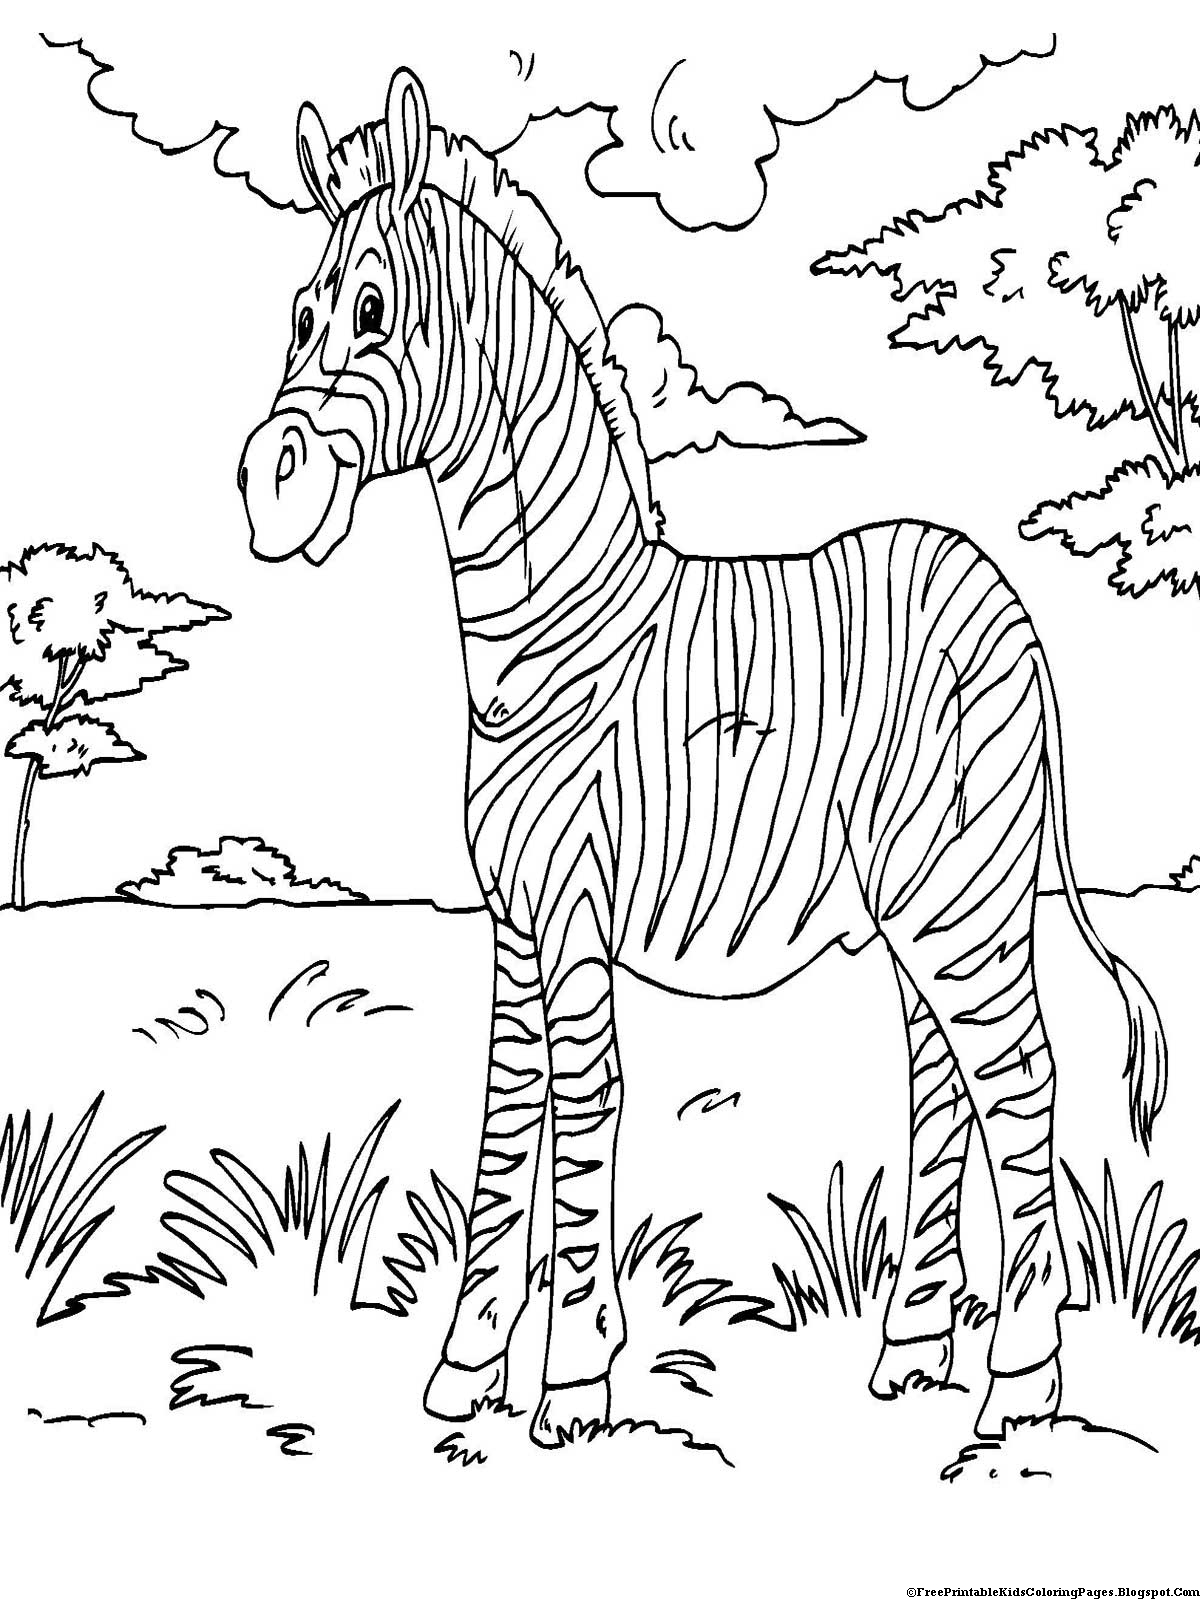 coloring pictures to color for kids puppy coloring pages best coloring pages for kids color coloring for to pictures kids